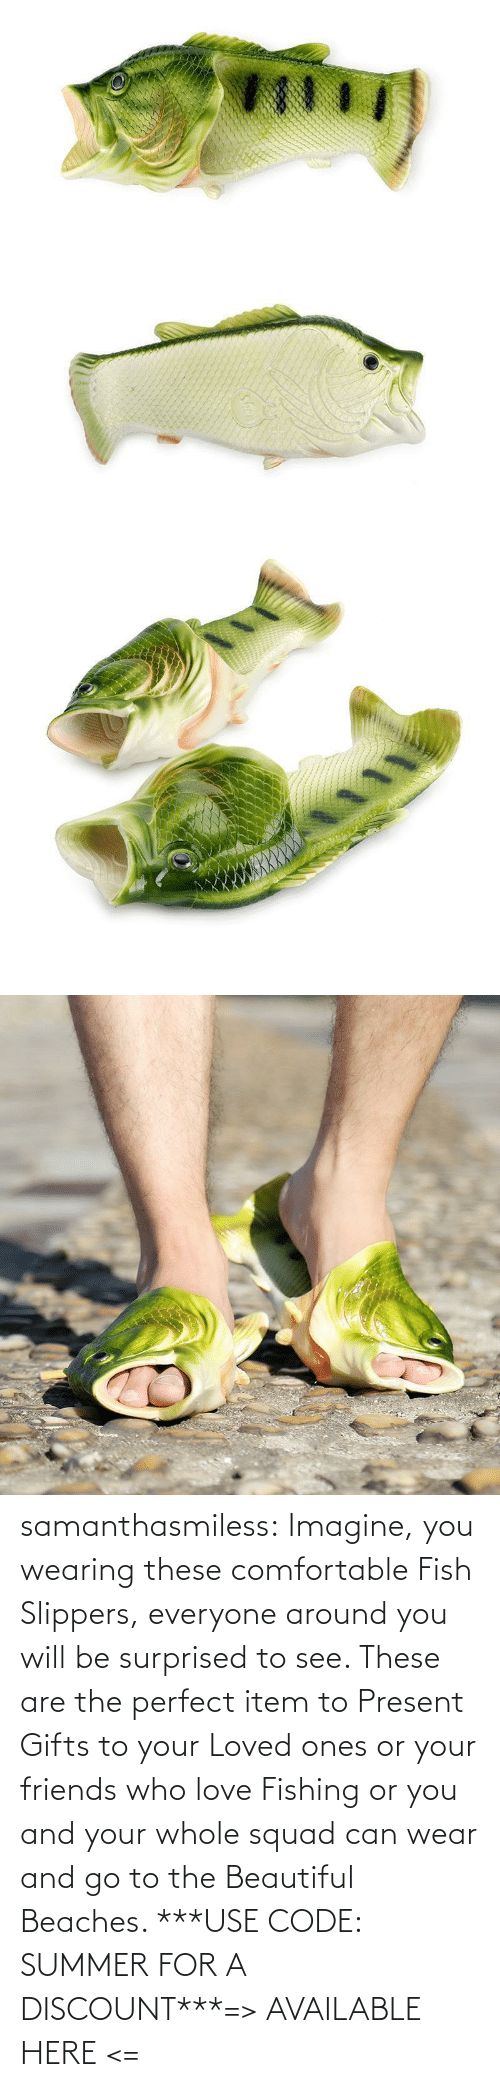 perfect: samanthasmiless:  Imagine, you wearing these comfortable Fish Slippers, everyone around you will be surprised to see. These are the perfect item to Present Gifts to your Loved ones or your friends who love Fishing or you and your whole squad can wear and go to the Beautiful Beaches. ***USE CODE: SUMMER FOR A DISCOUNT***=> AVAILABLE HERE <=